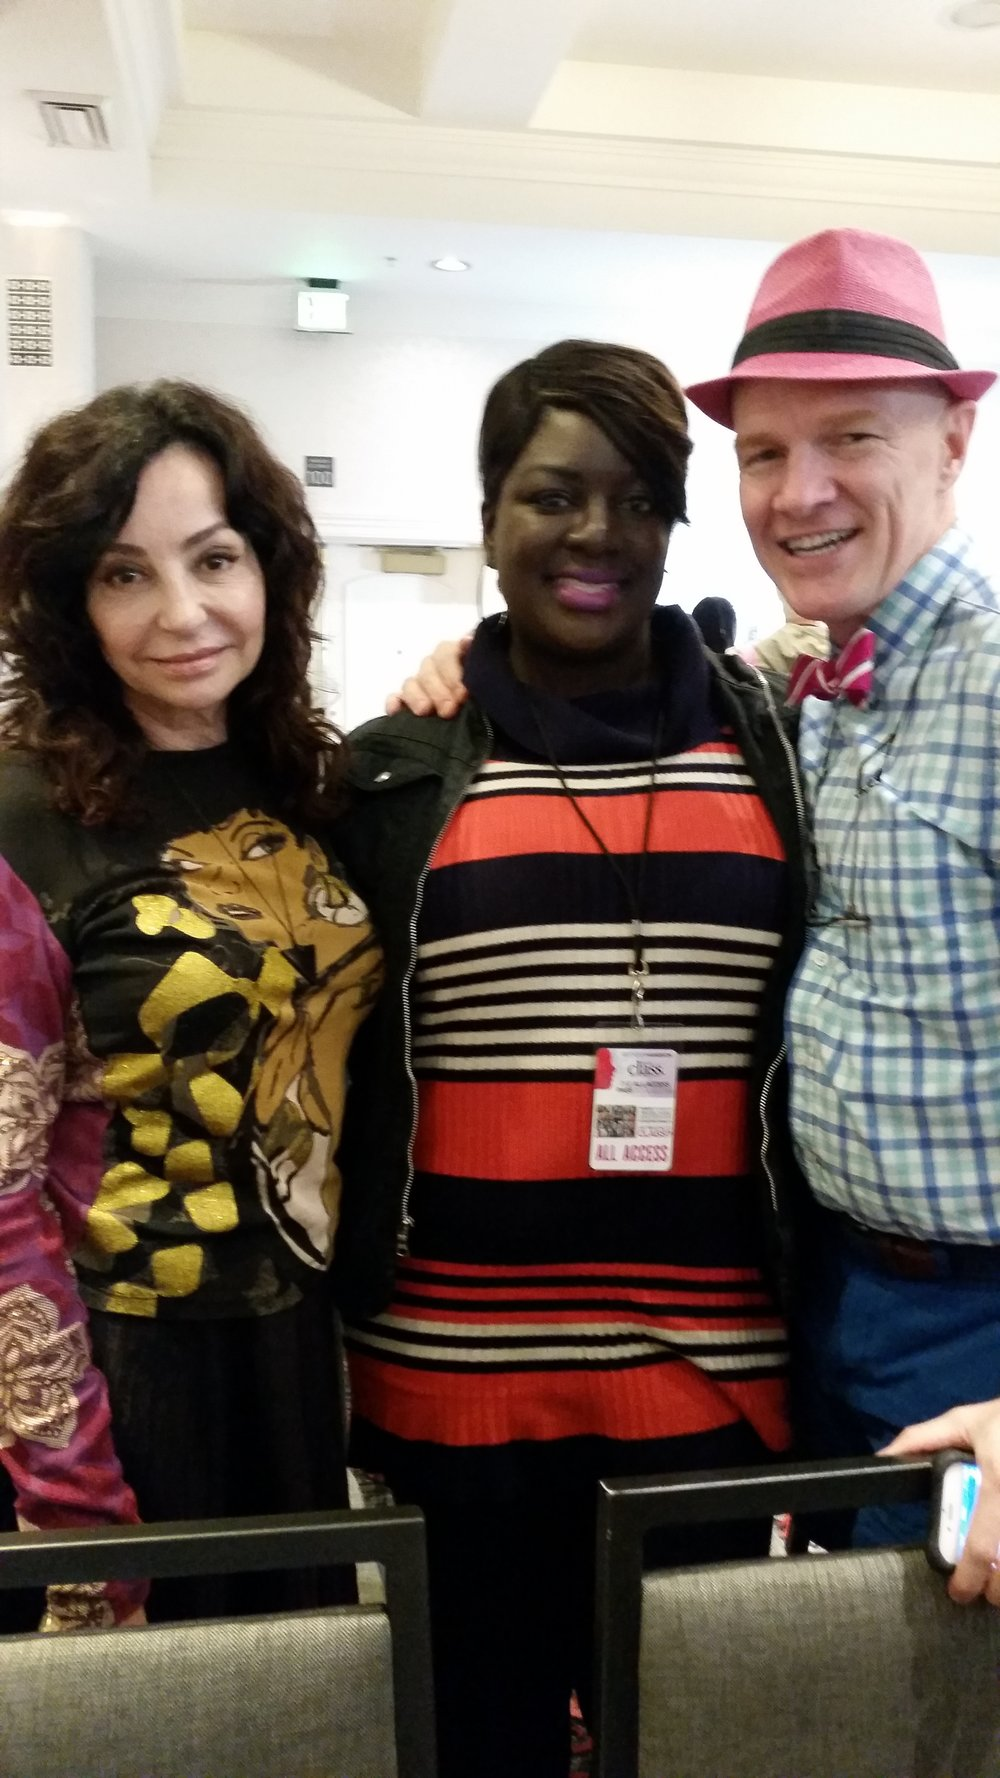 With Stephen Dimmick & Eugenia Weston (the original Brow Guru)